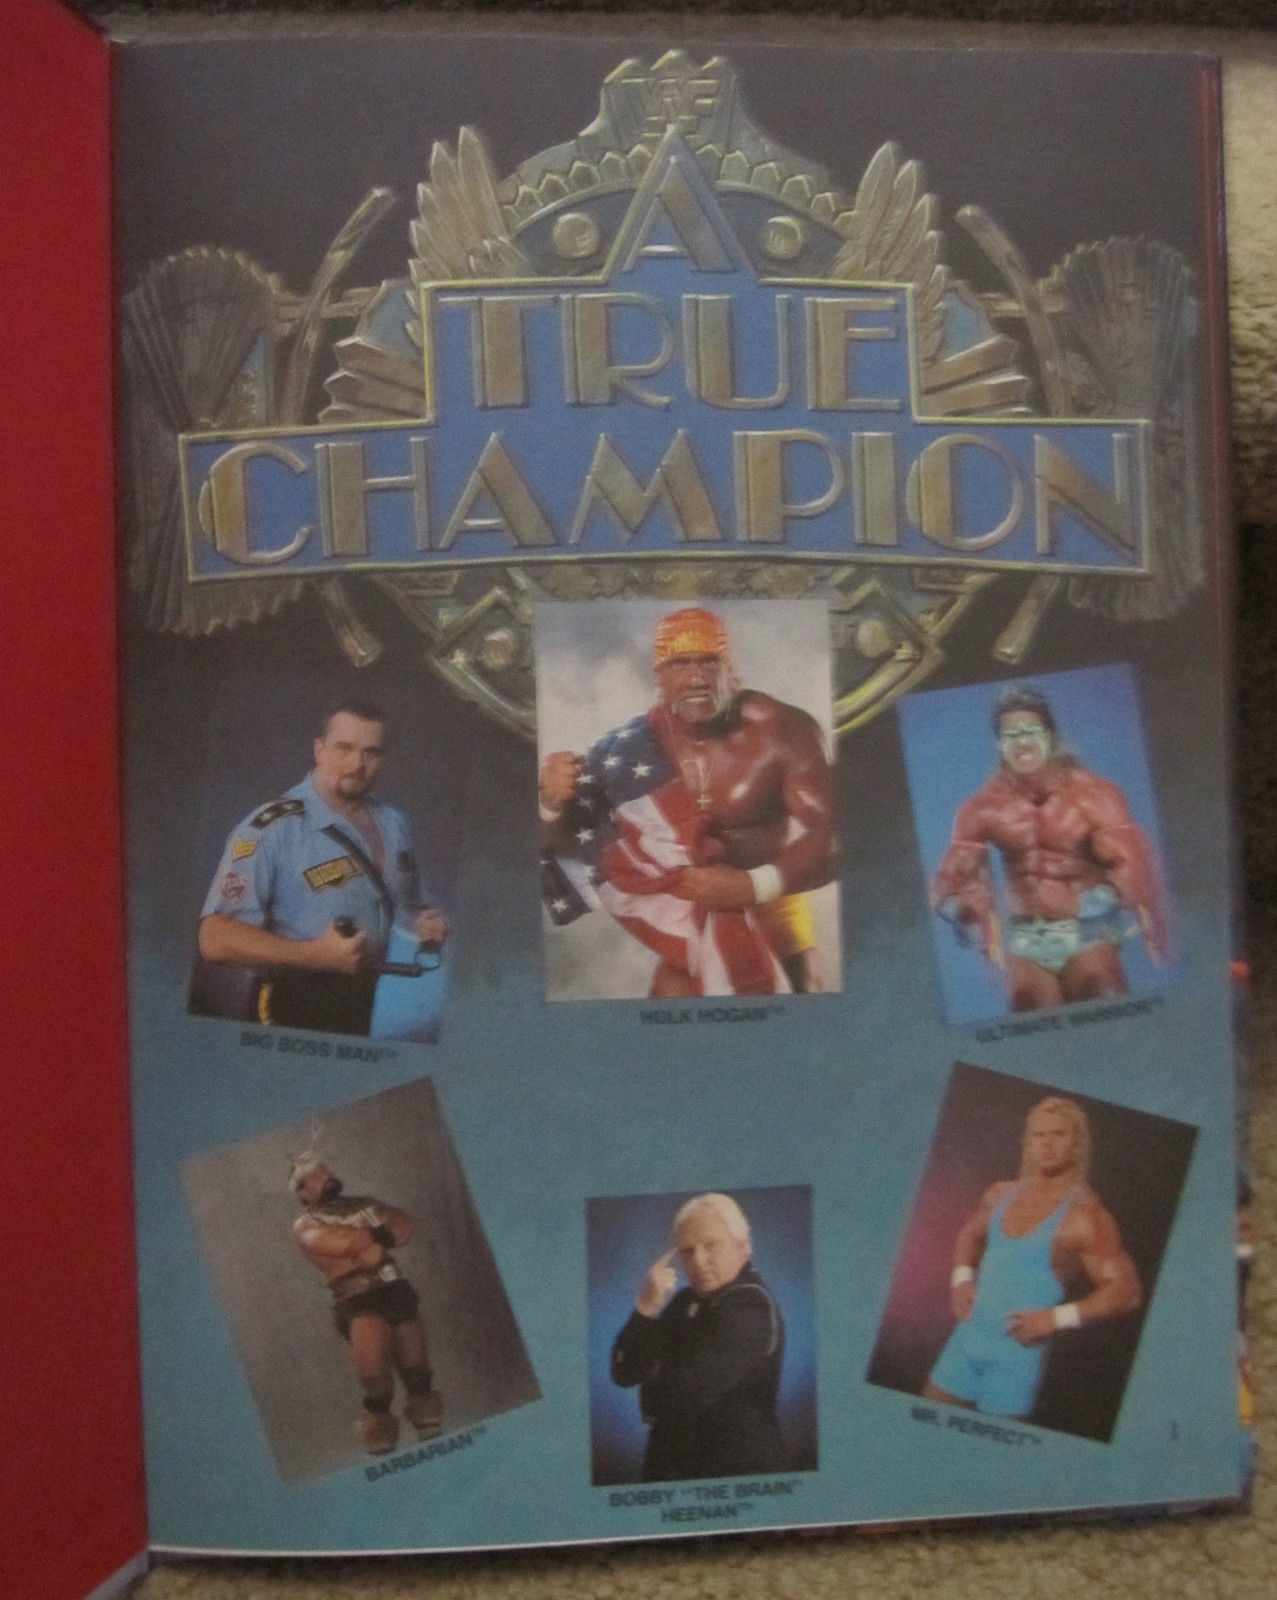 Hulk Hogan A True Champion book back